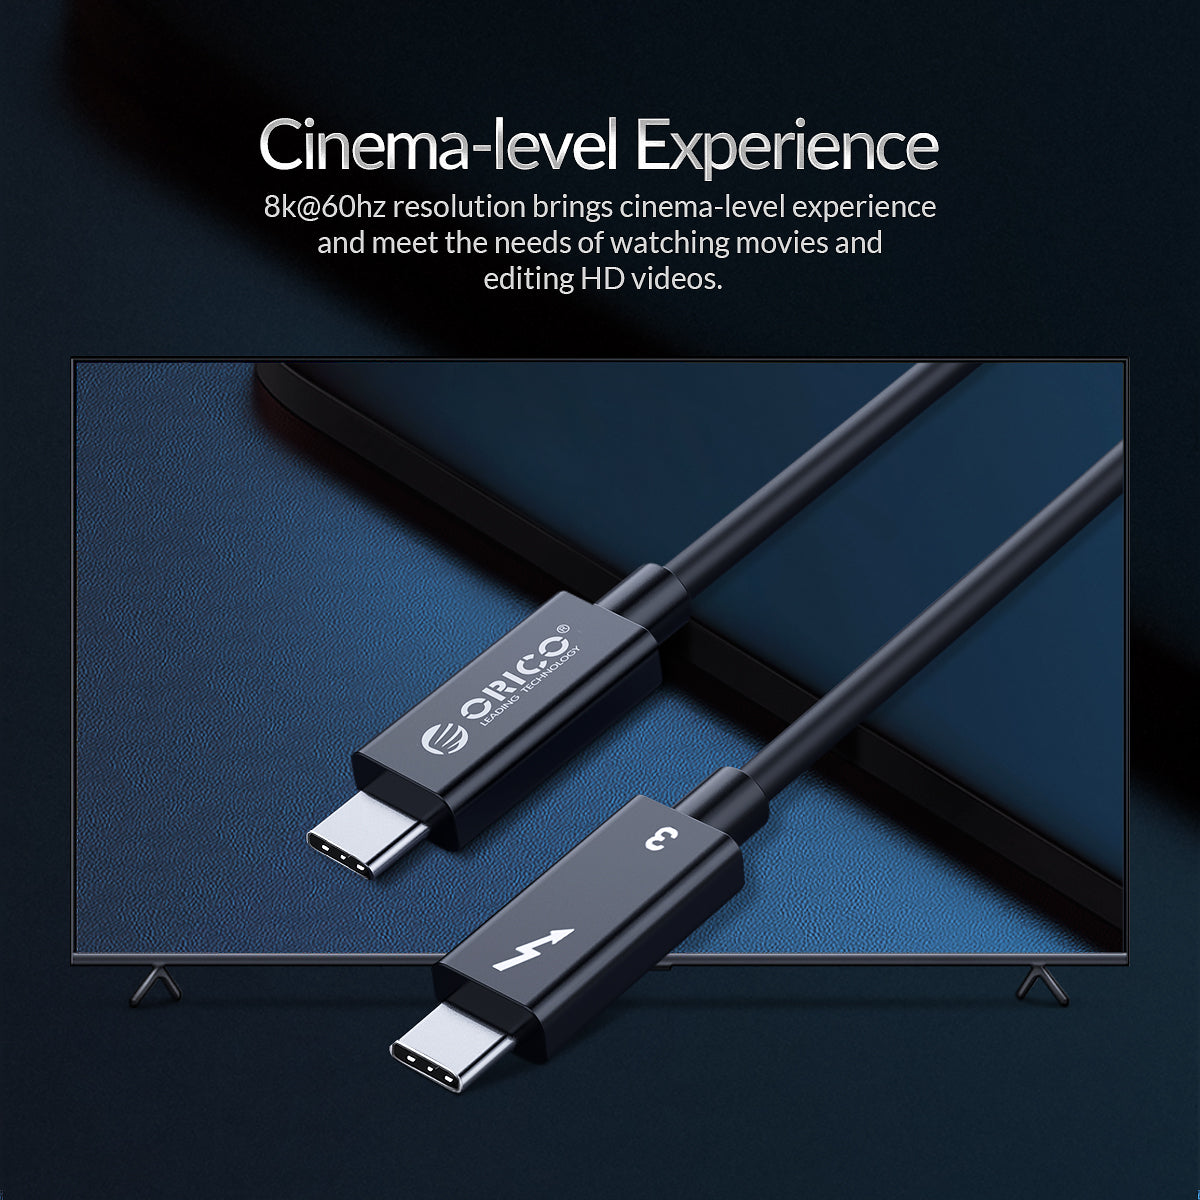 ORICO Thunderbolt 3 Cable USB-C to USB-C 100W PD3.0 Cable 8K 60HZ Video Output 40Gbps Data Transmission Cord For Samsung Galaxy S20 For iPad Pro 2020 MacBook Pro 2020